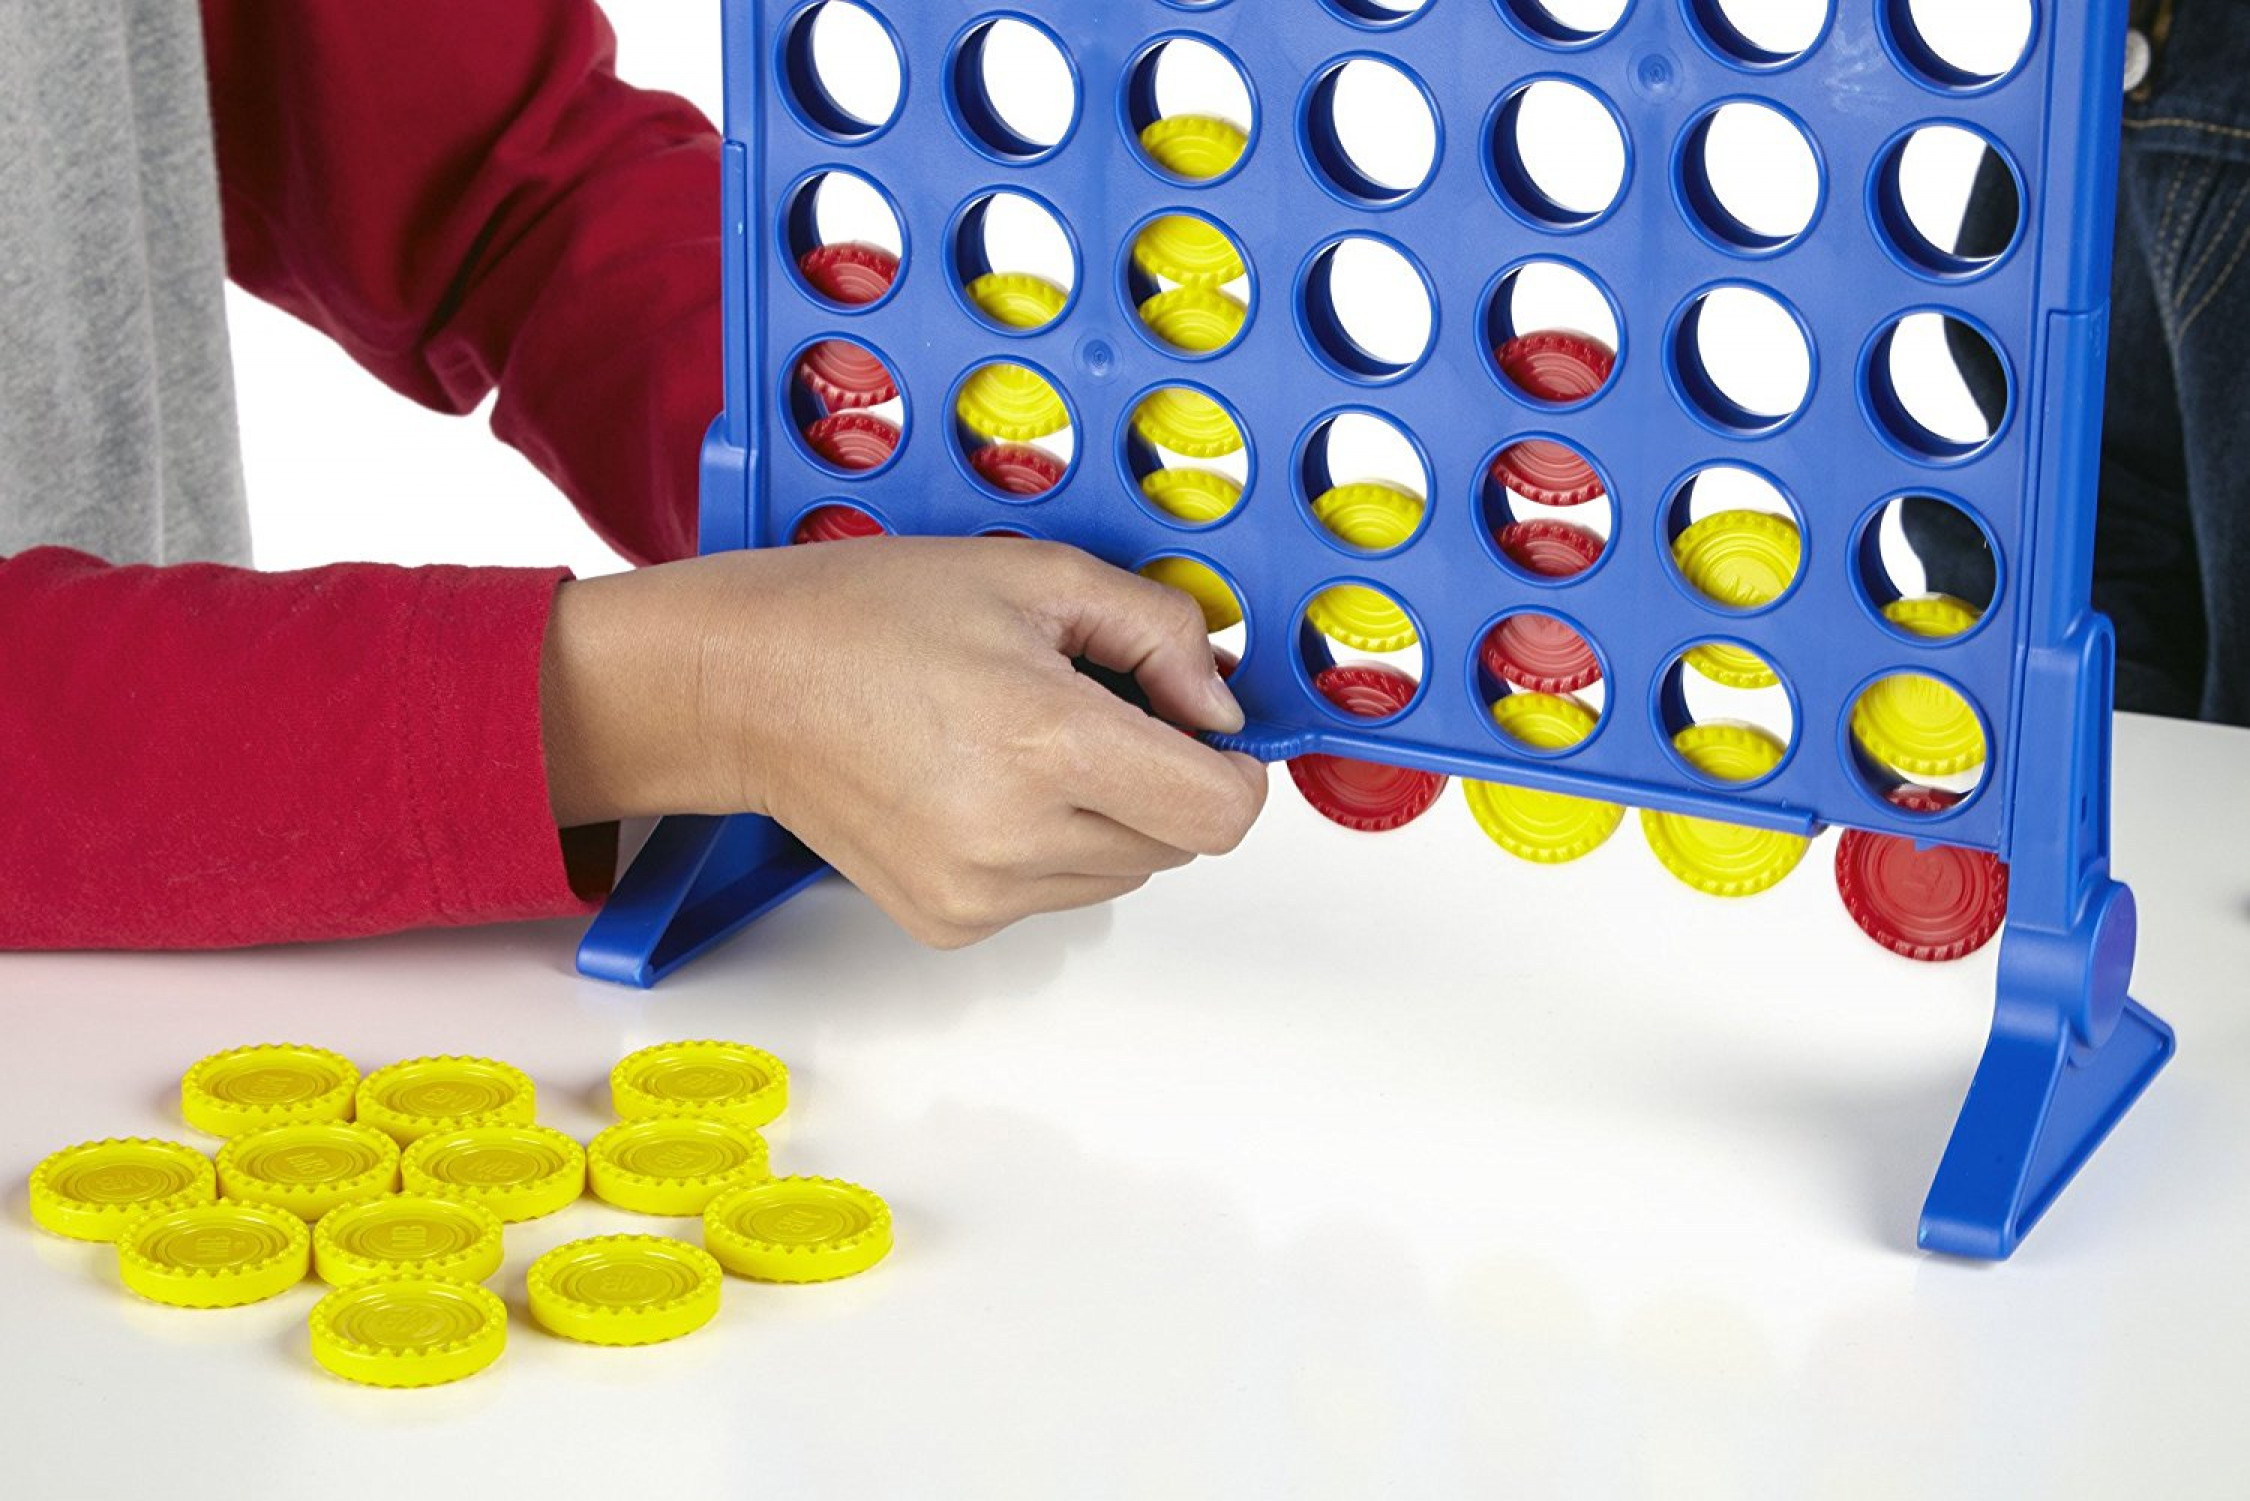 Connect 4 Game Family Kids Adults Toys Board Games Activvity Toy